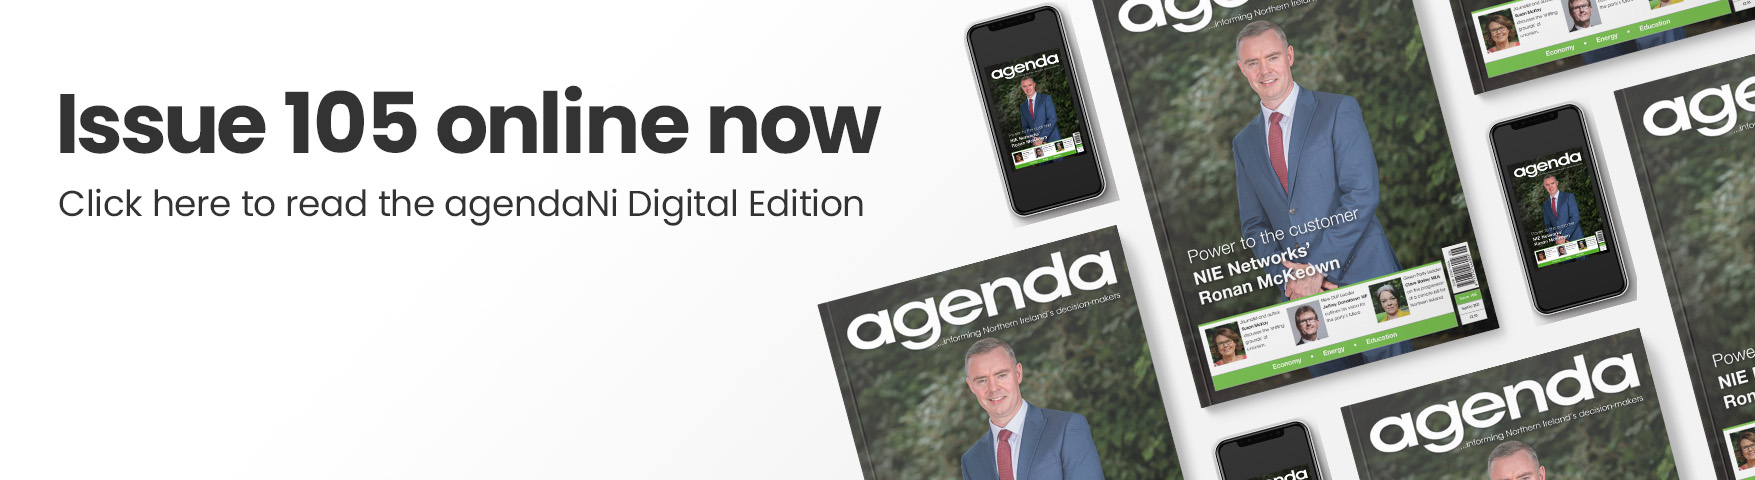 Issue 105 online now. Click here to read the agendaNi Digital Edition.